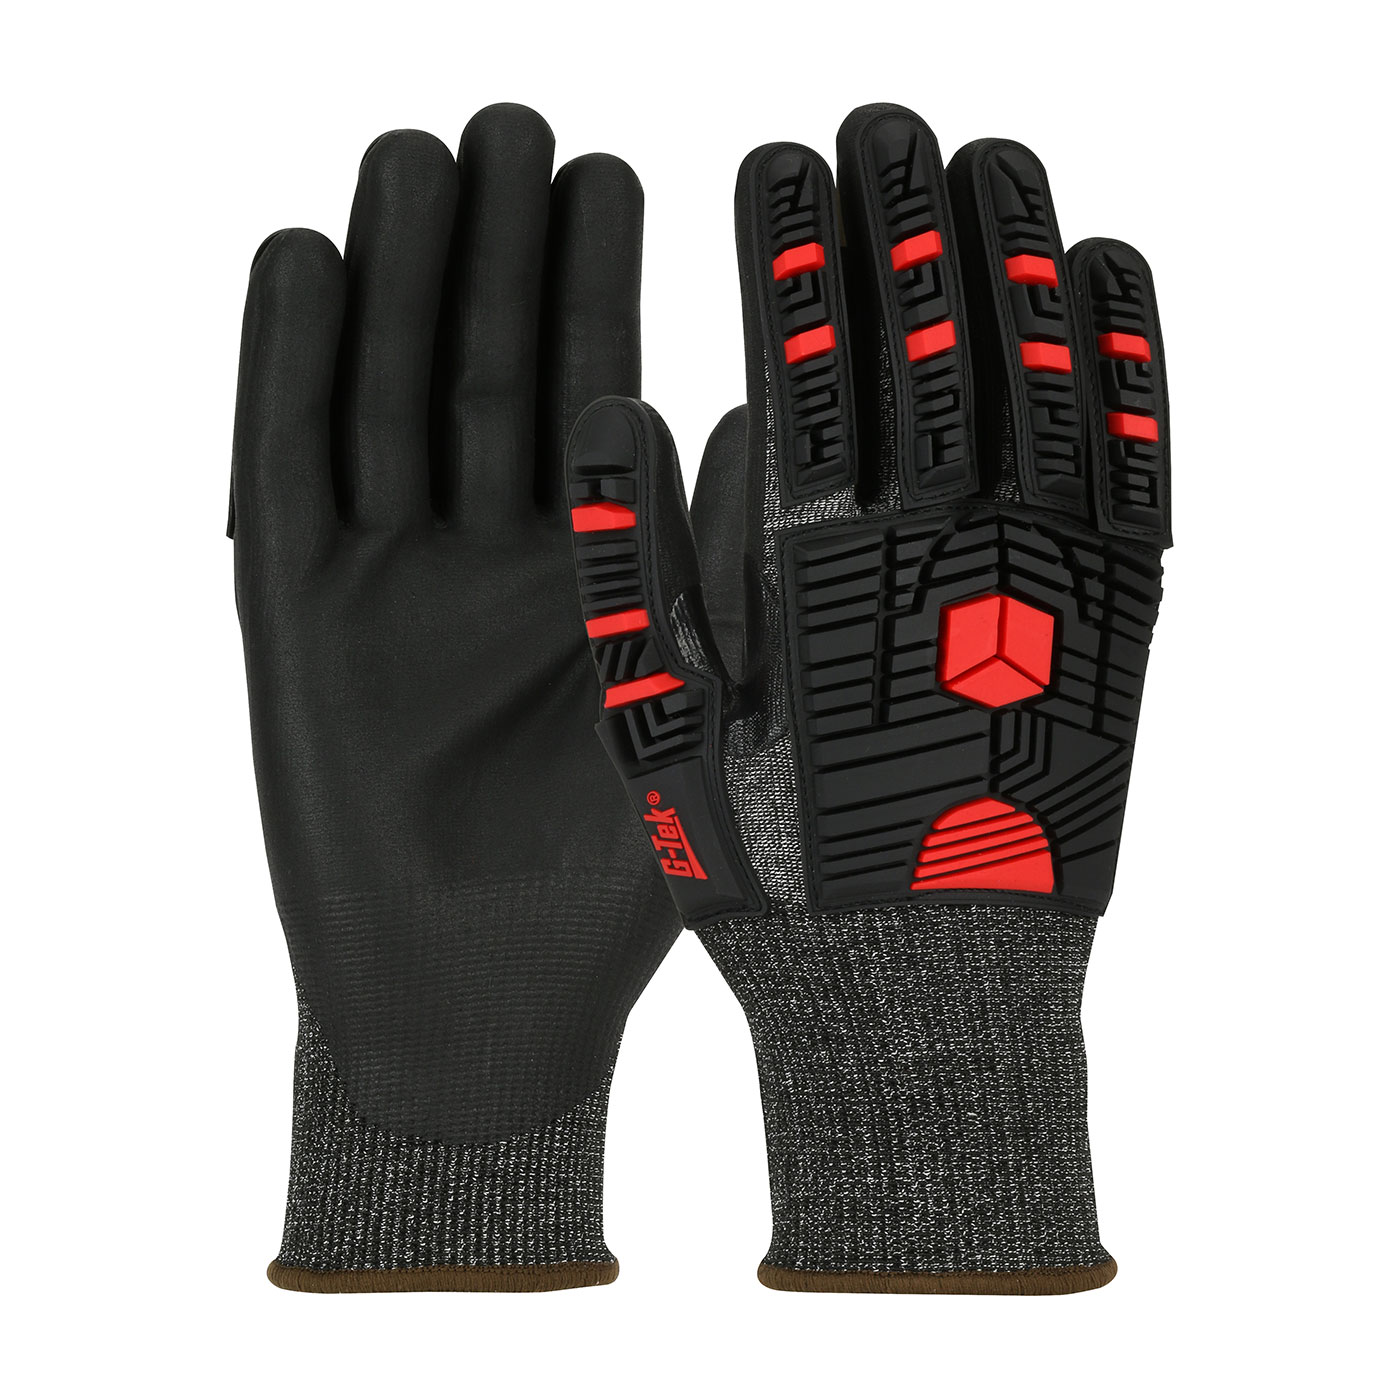 16-MP935 PIP® Seamless Knit G-Tek®  PolyKor® X7™ Blended Glove with Impact Protection and NeoFoam® Microsurface Coated Palm & Fingers